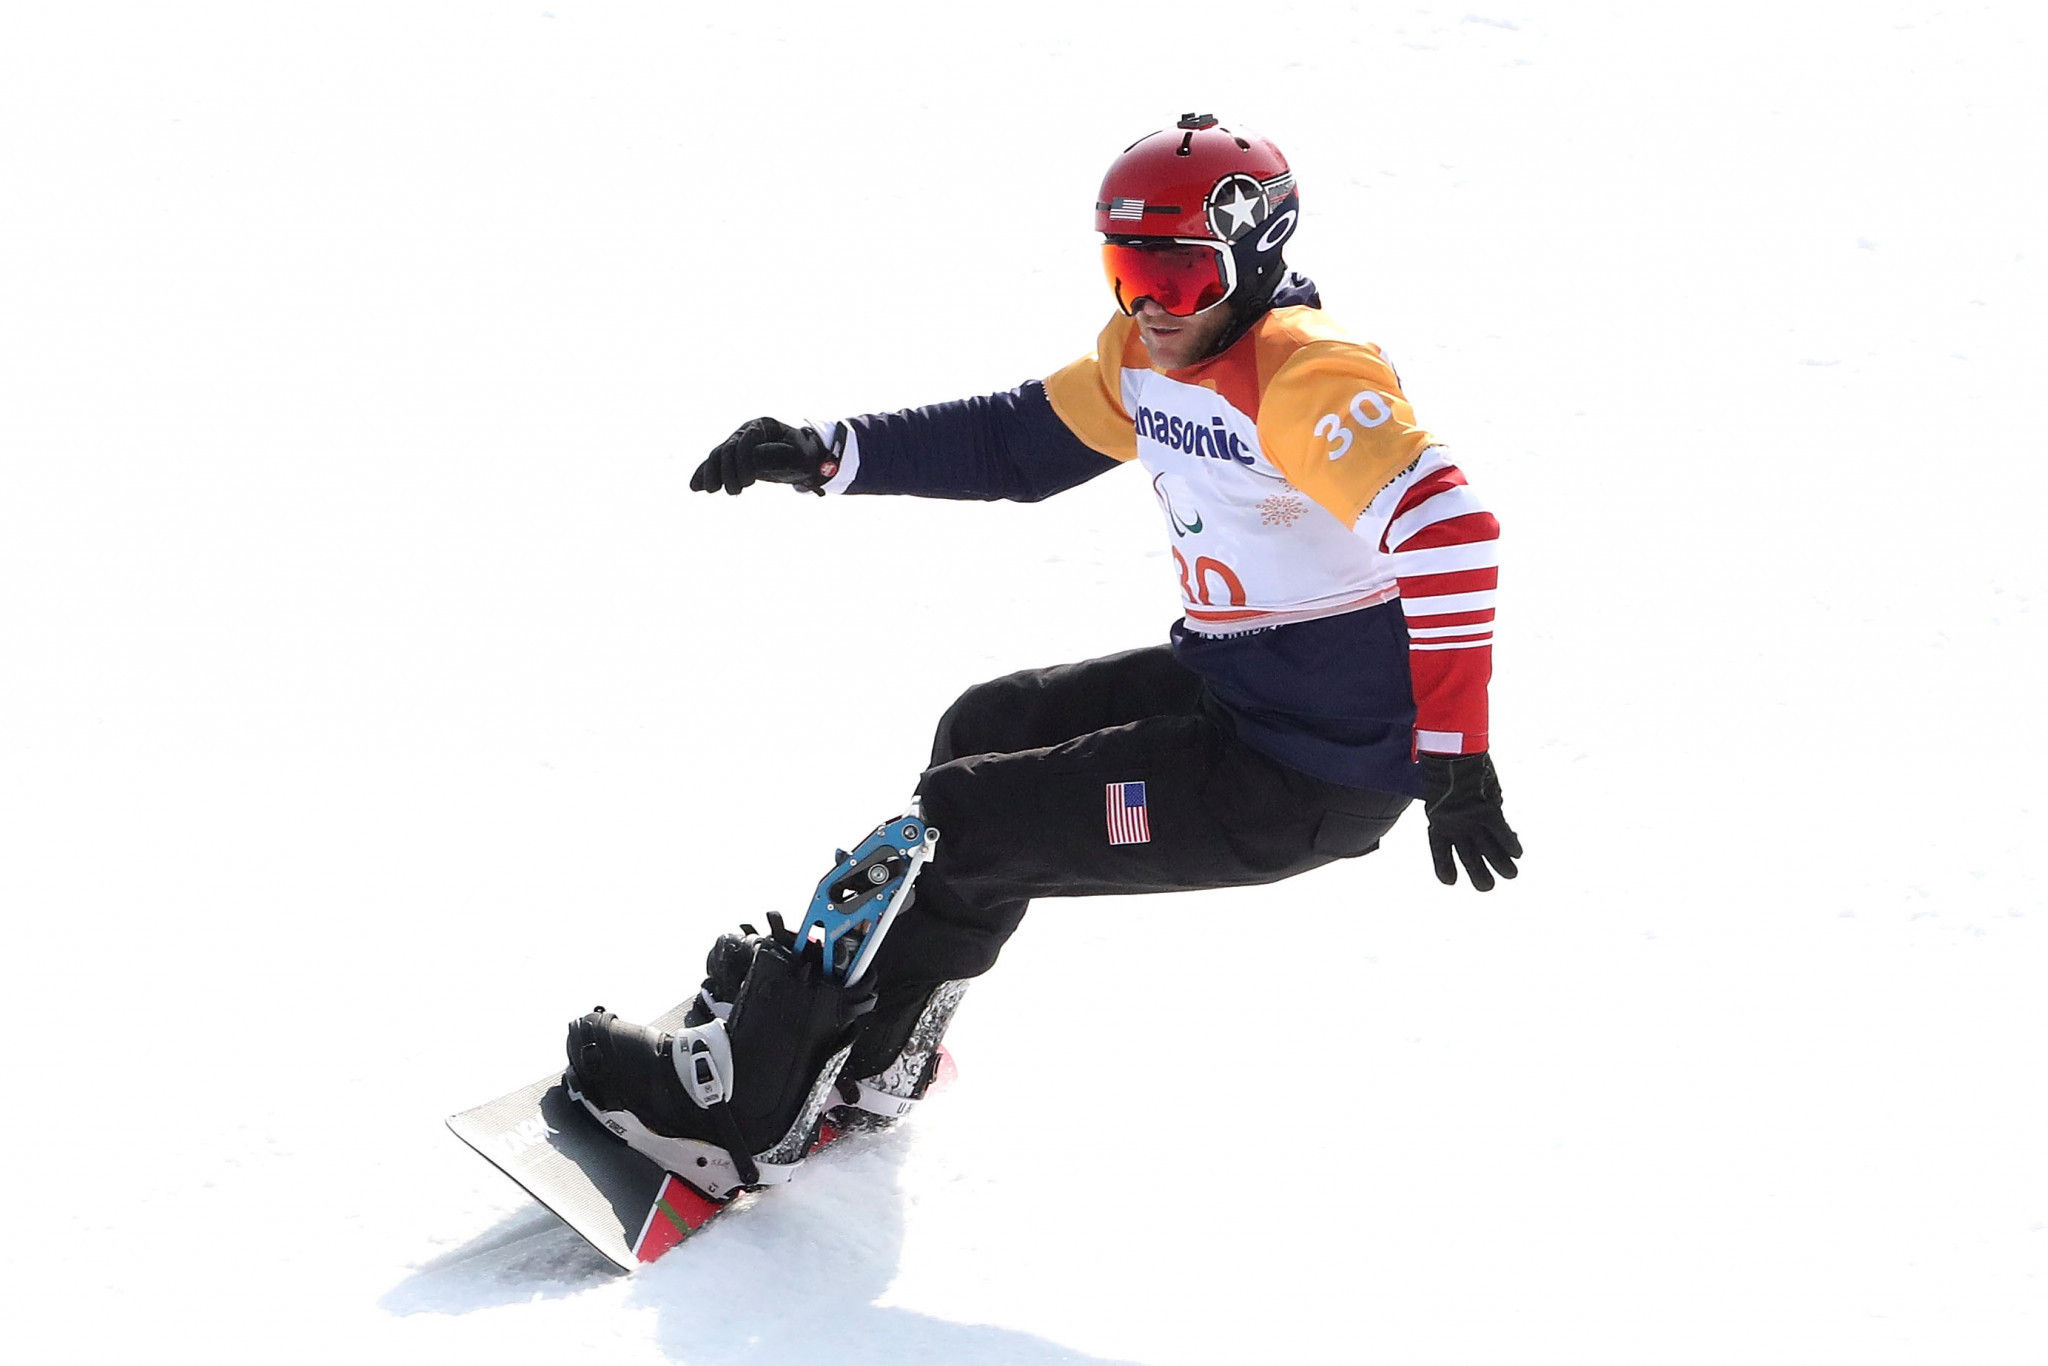 United States dominate snowboard cross at Winter Paralympics